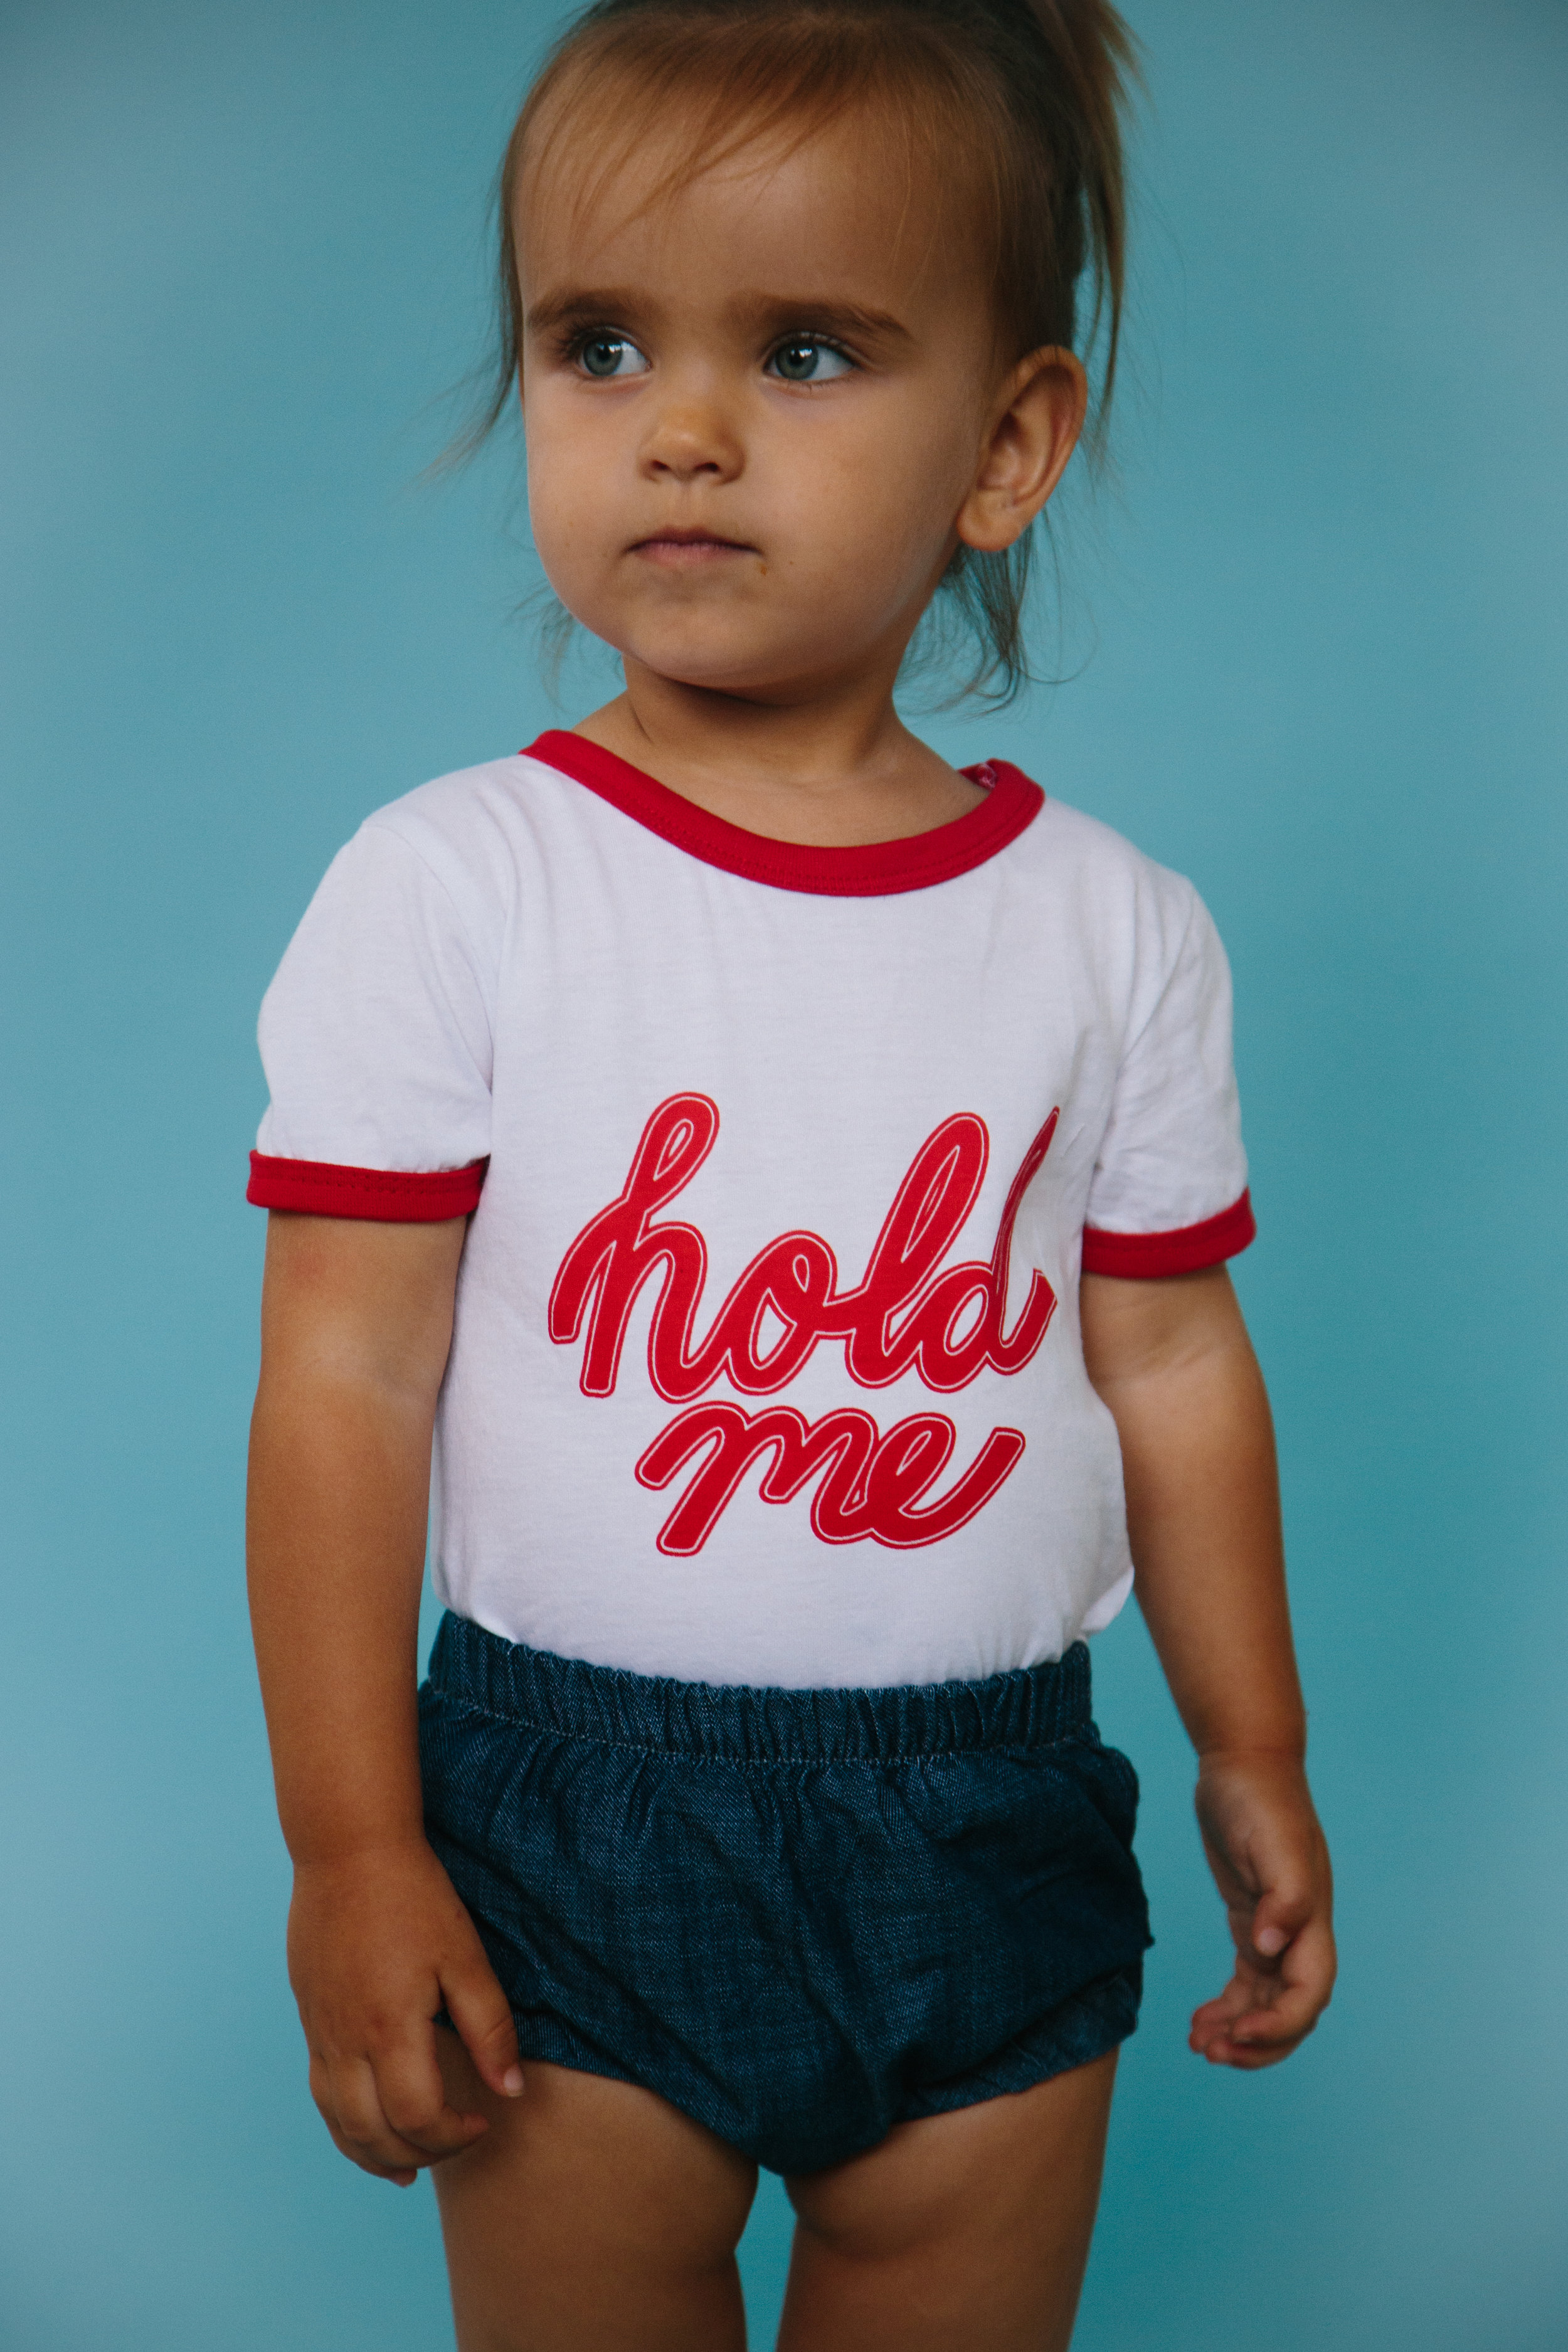 Hold Me T-shirts - A crowd favorite at Renegade Craft, the Hold Me T-shirt is a staple for any cool kid's wardrobe.